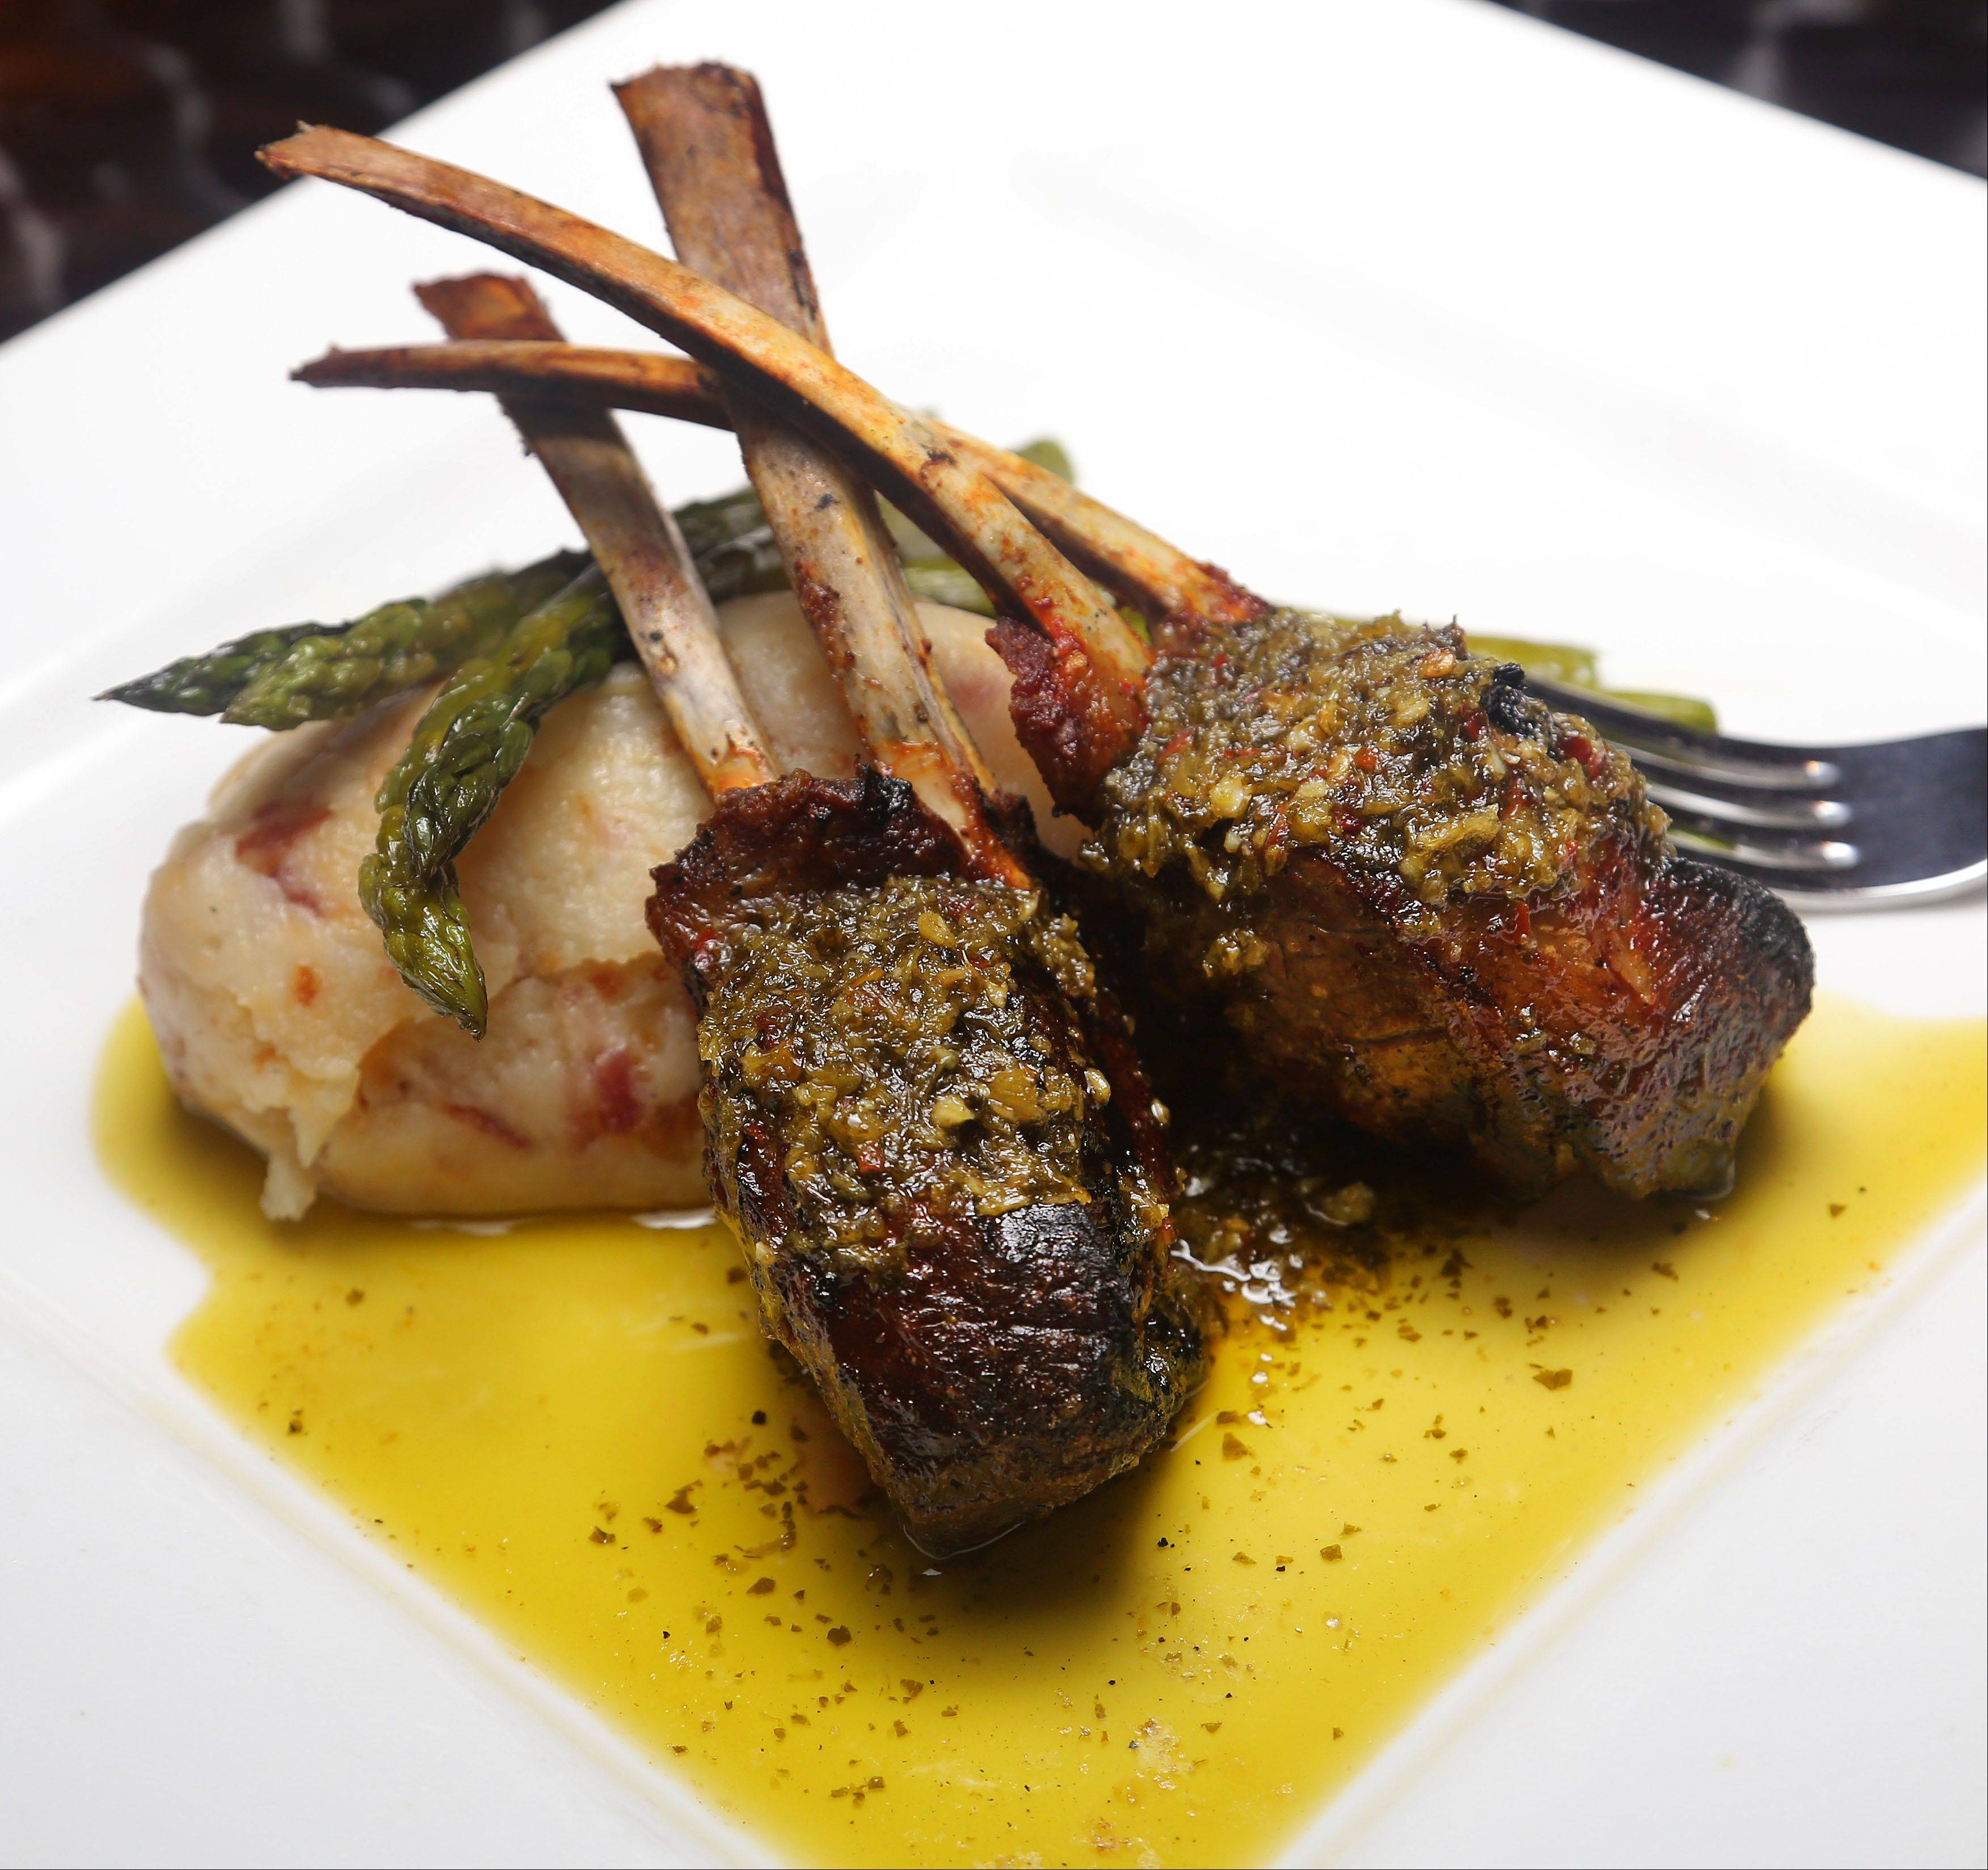 Grilled lamb chops take on an Asian flare at Spice Restaurant and Lounge in Gurnee.